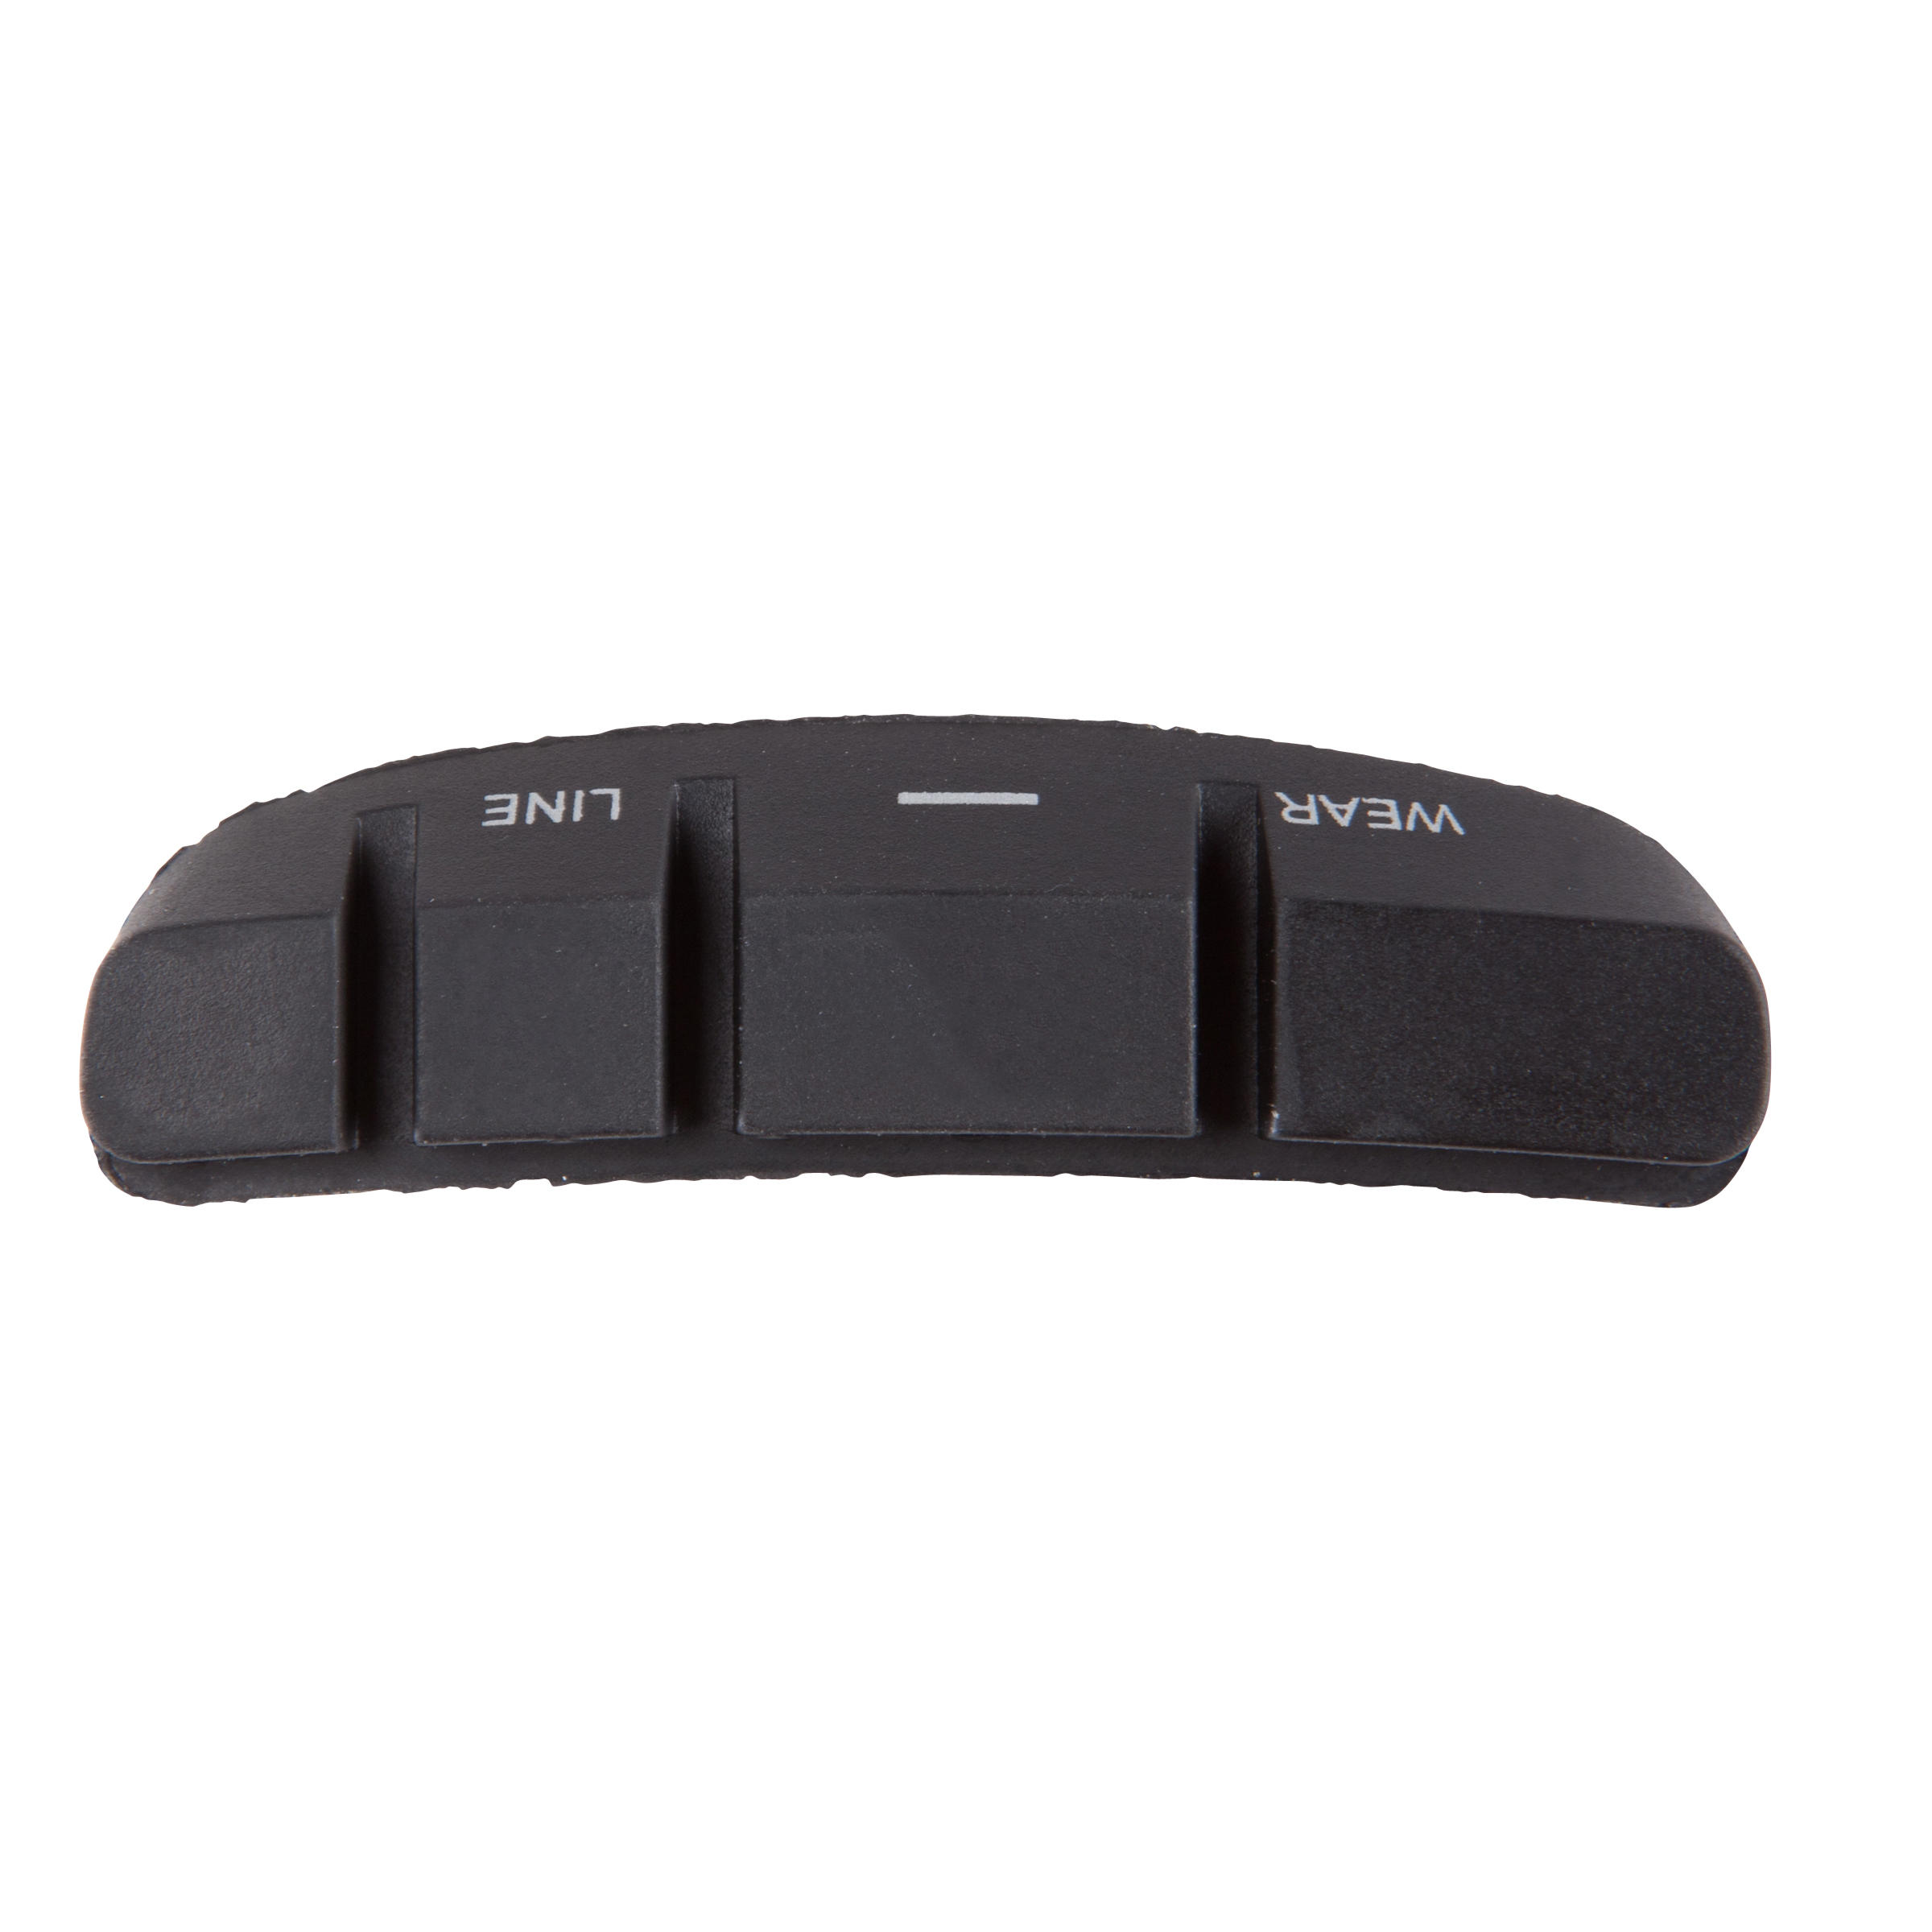 58 mm Cantilever Brake Pads